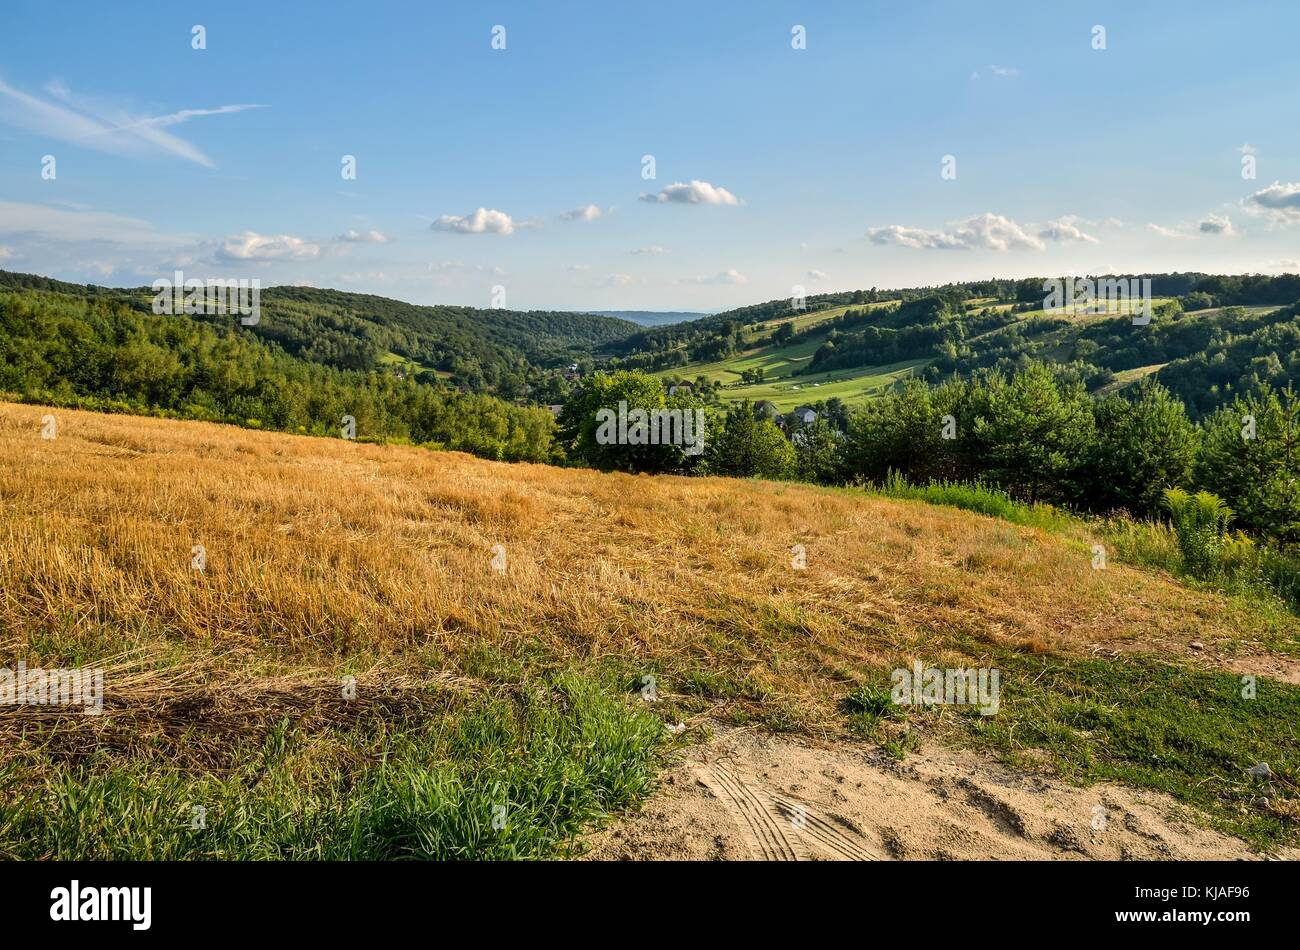 Rural summer landscape. A village in a beautiful Jurassic valley in Poland. - Stock Image